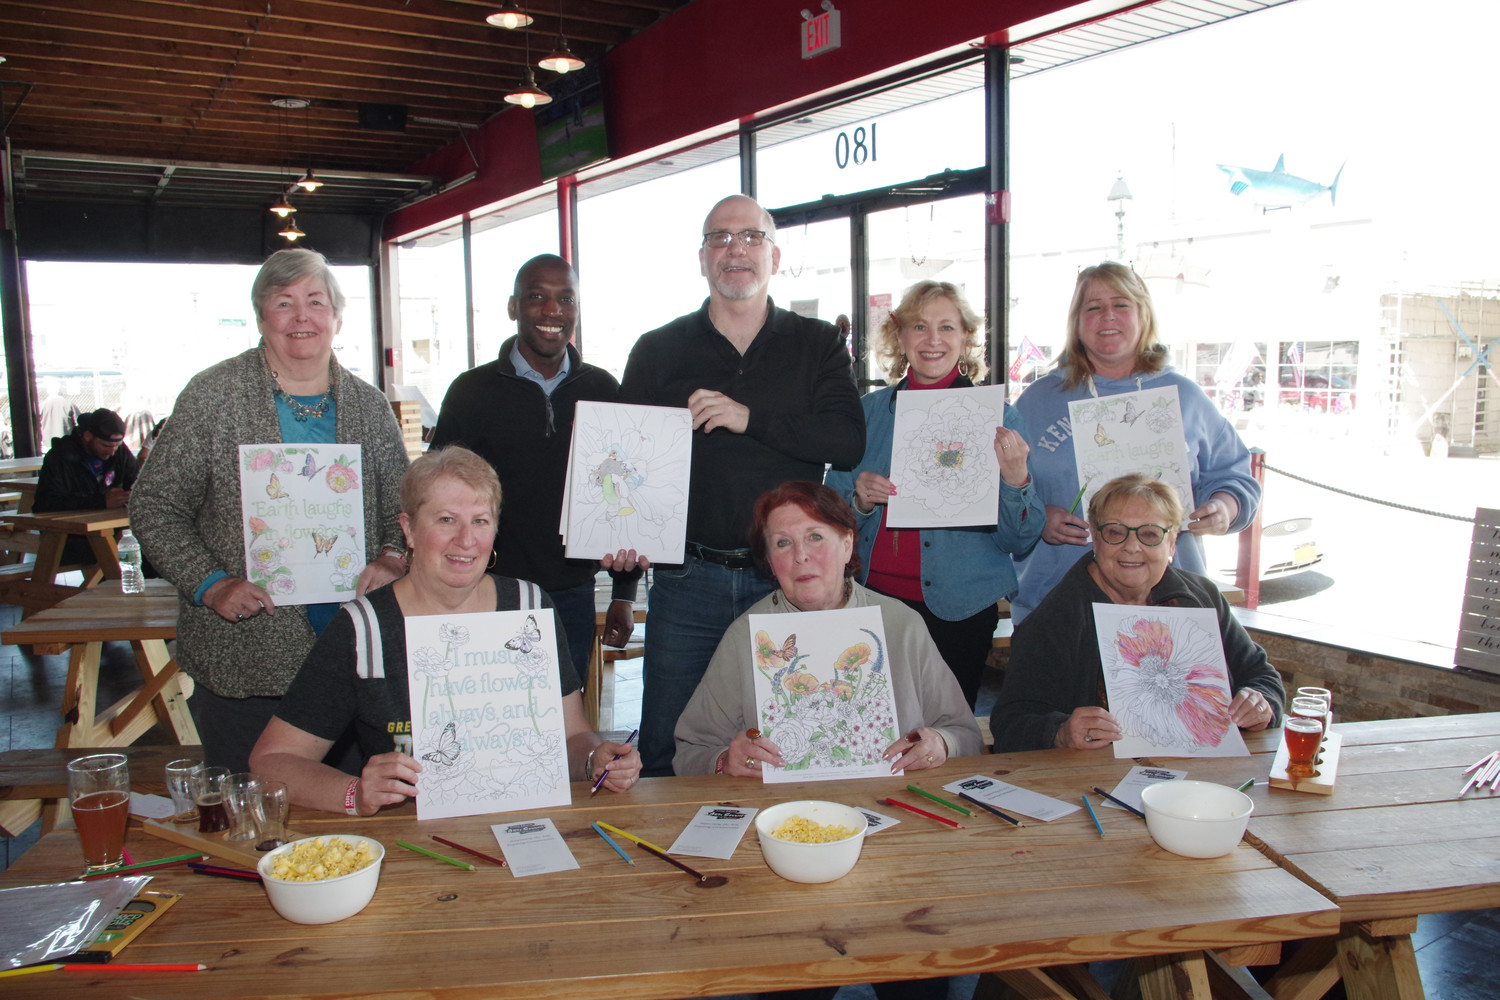 Long Island Arts Council at Freeport showed their finish coloring pages during the fundraiser at the BrewSa Brewery, from left, Janet Gabler, Anthony Miller, Larry Dresner, Michelle Berger, Sharon Gabler, Diane Stratton, Lois Howes and Mirelli Taub.